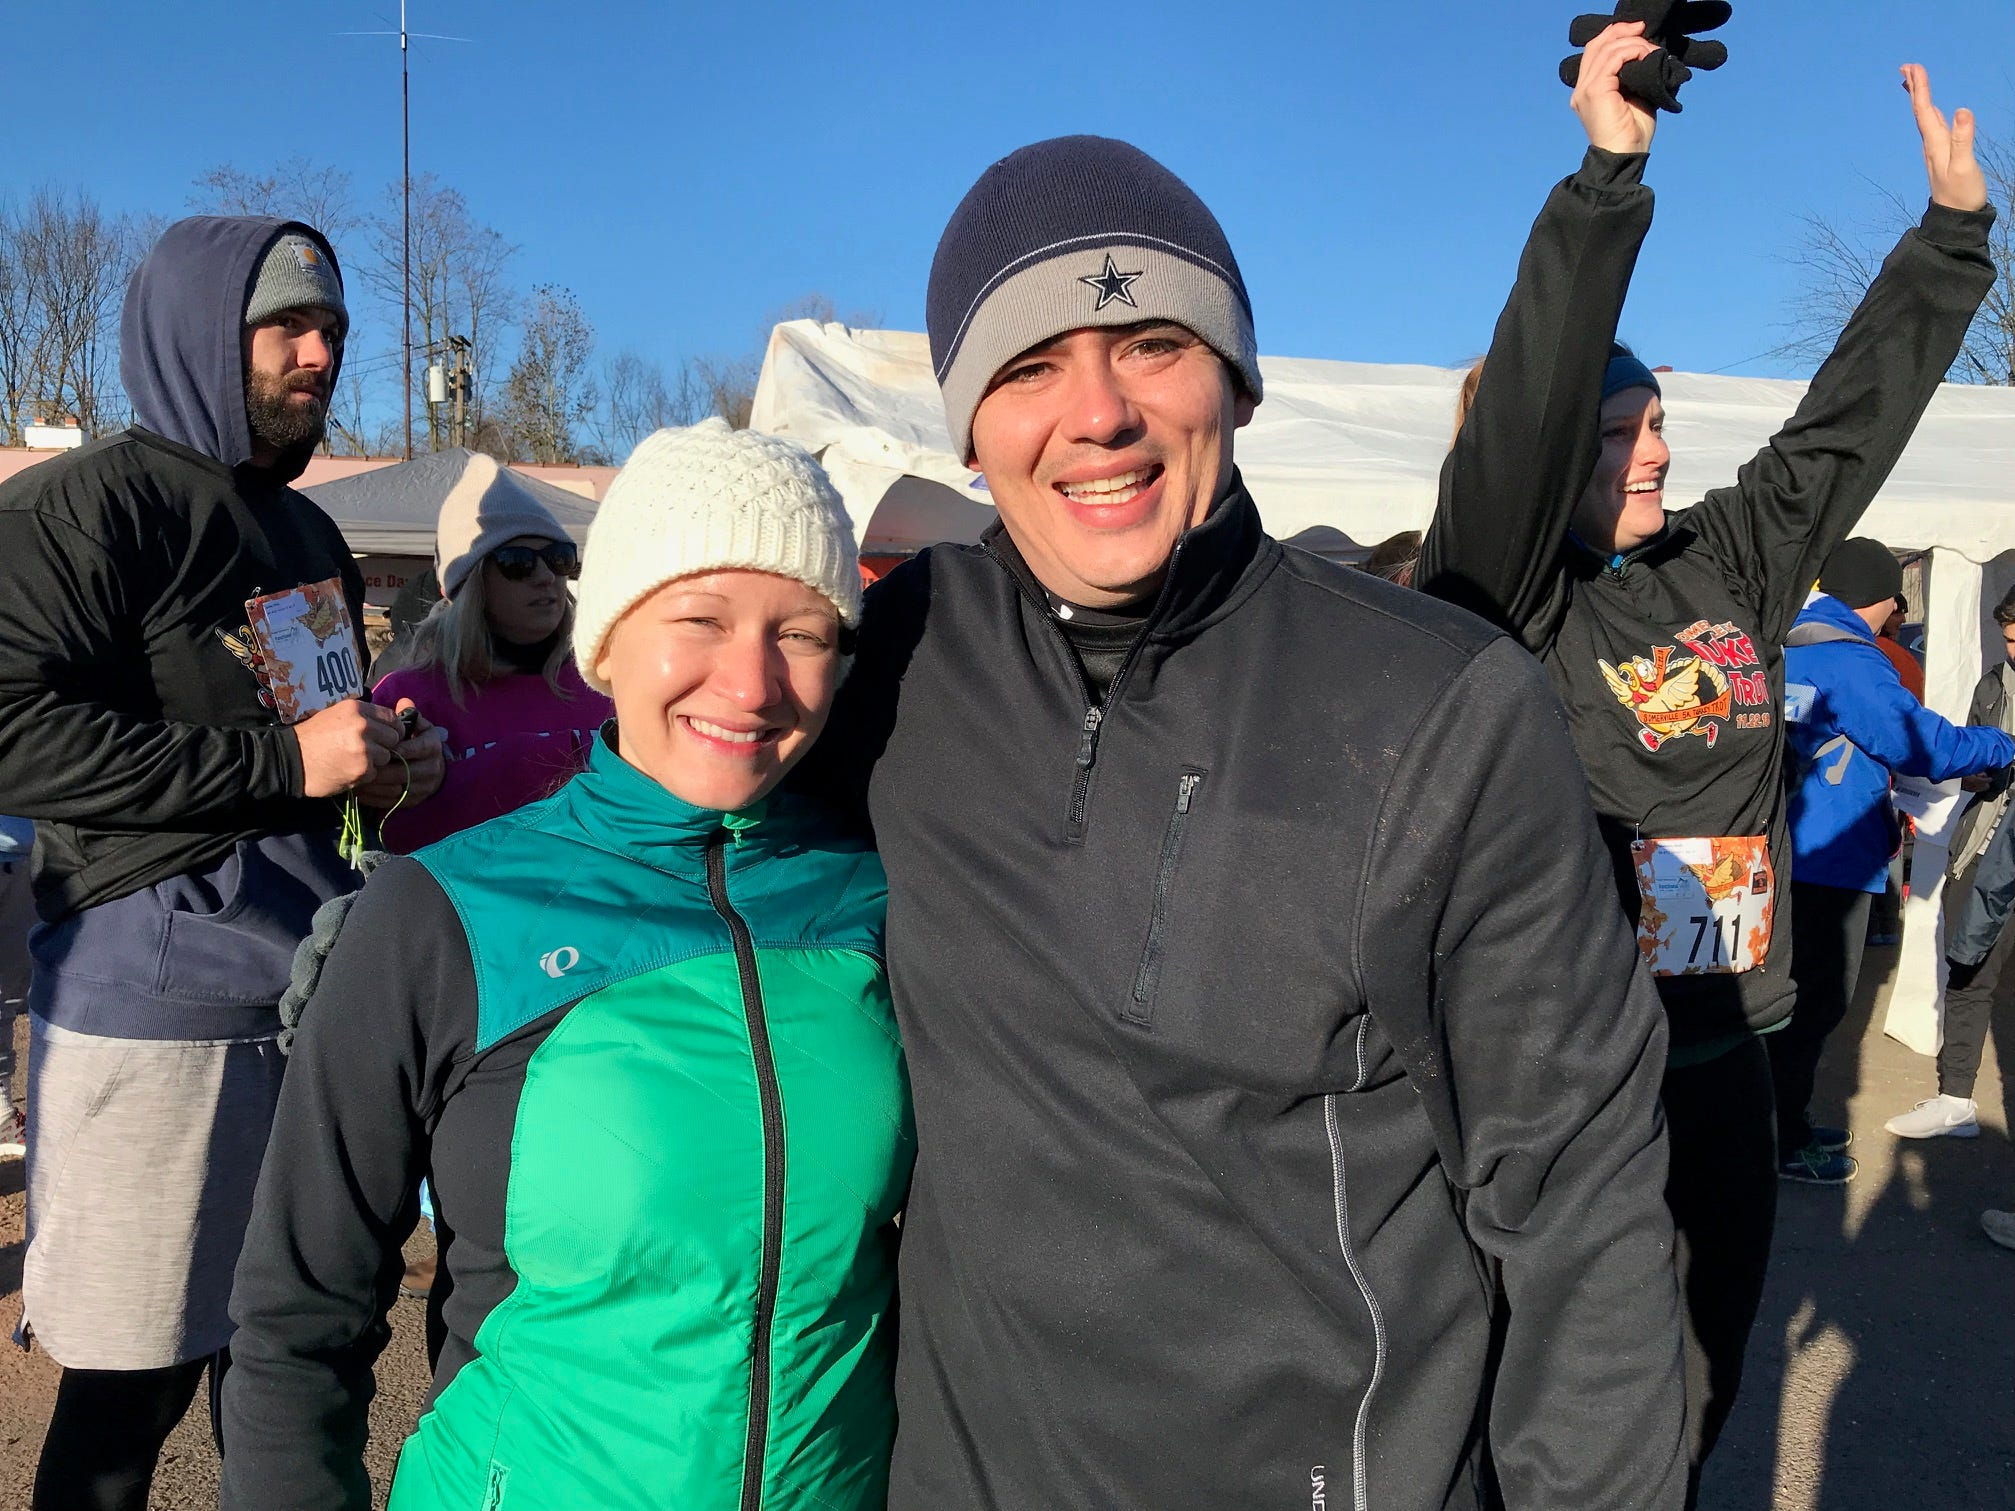 Nadine Vazquez and her husband, Jose, participated in the Somerville 5K Turkey Trot on Thanksgiving Day.